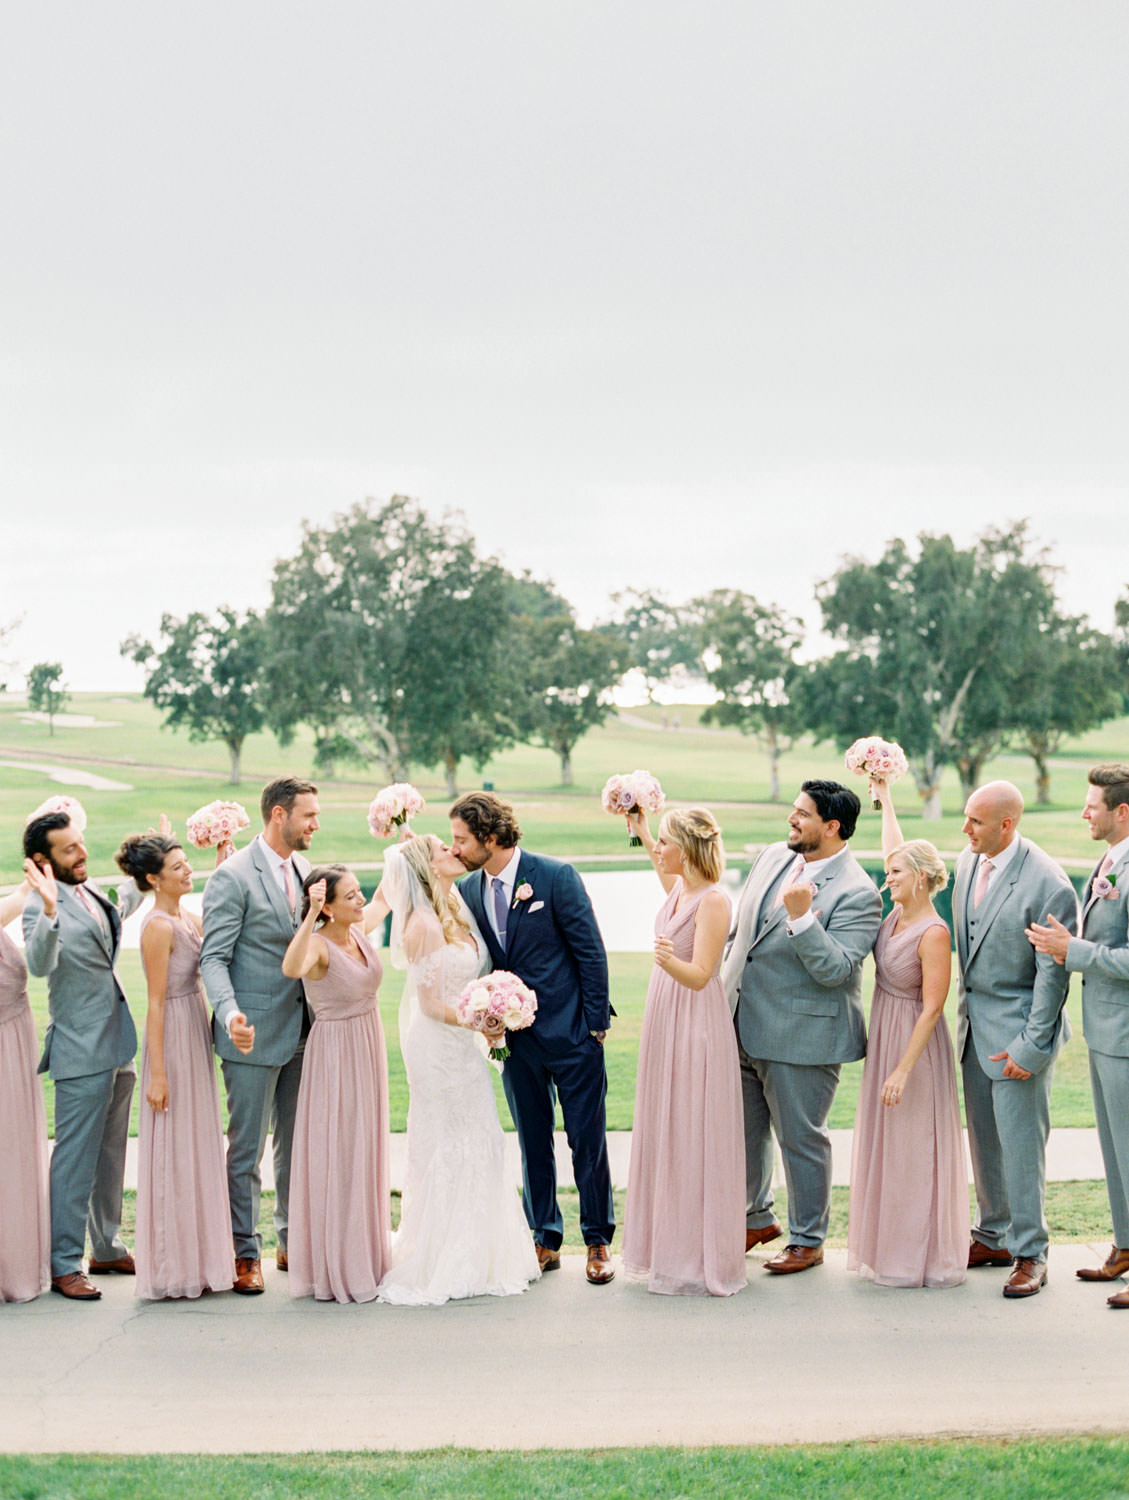 Bride in Pronovias off shoulder lace gown and long train and veil holding a bouquet with blush, lavender, and ivory roses, bridesmaids in lavender dresses and groomsmen in light grey suits and groom in navy suit, Lodge at Torrey Pines wedding, photography by Cavin Elizabeth Photography